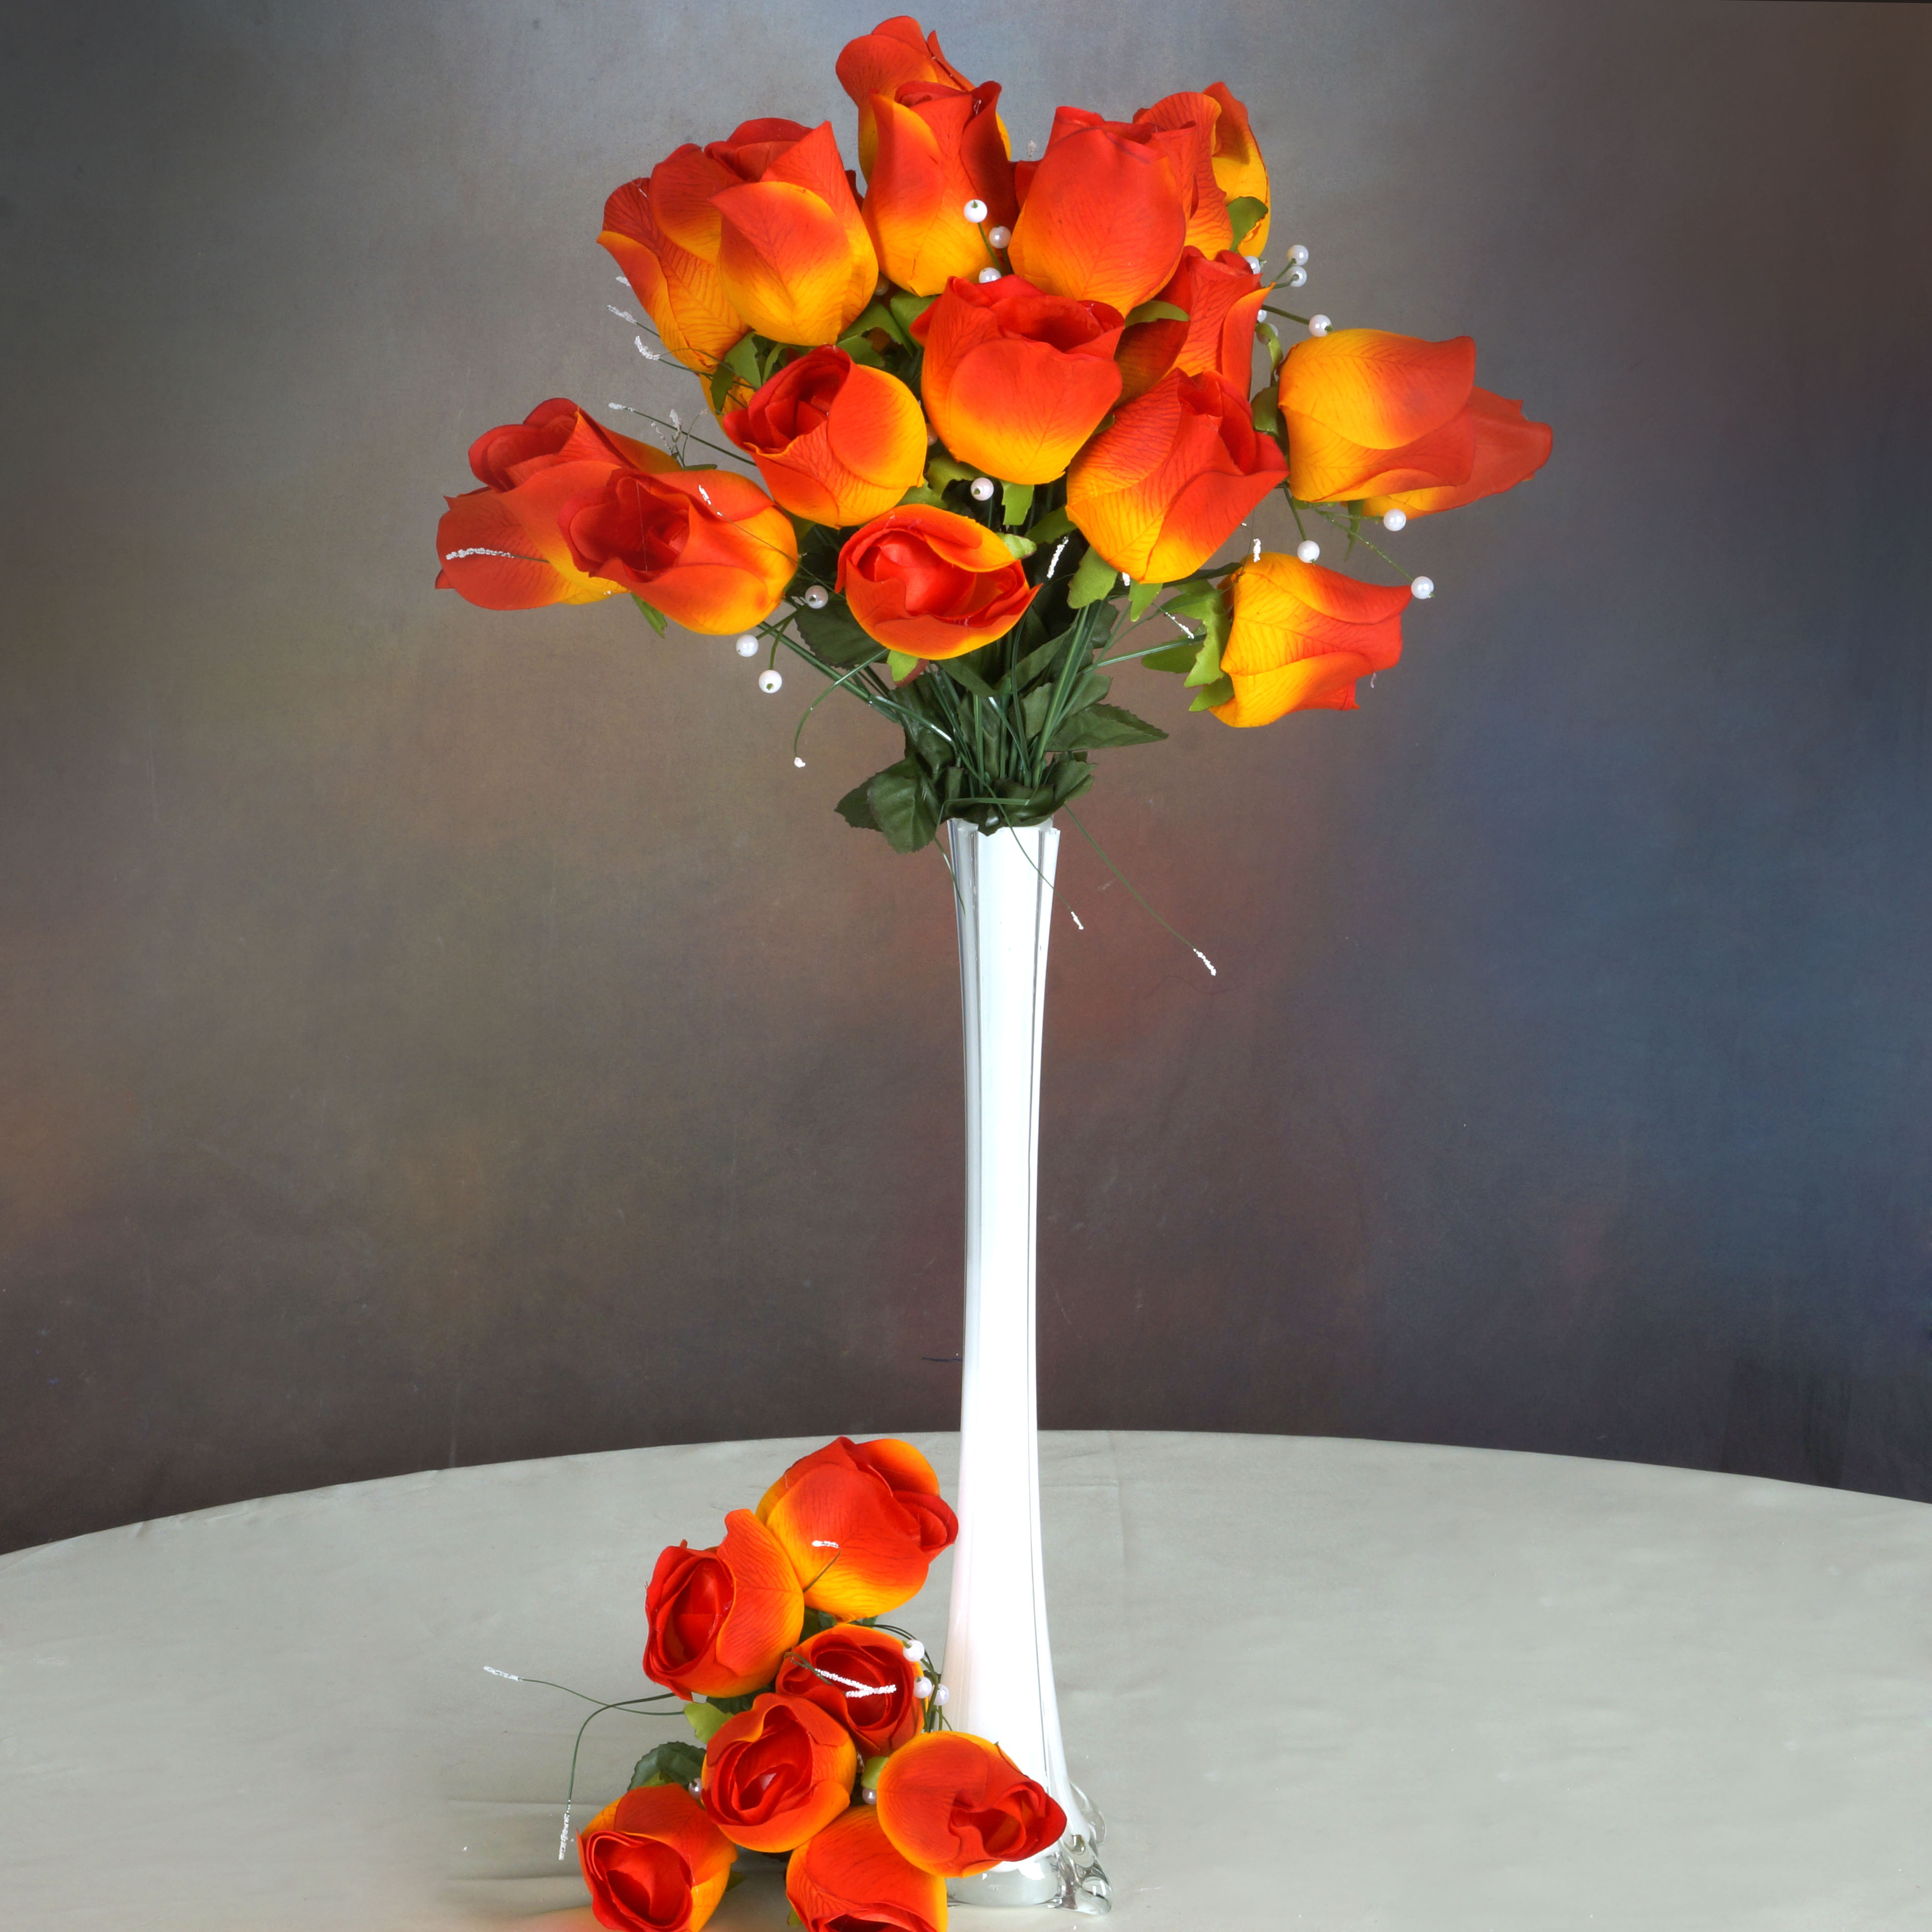 BalsaCircle 42 Giant Velvet Rose Buds on Long Stems - Artificial Flowers DIY Home Wedding Party Bouquets Arrangements Centerpieces